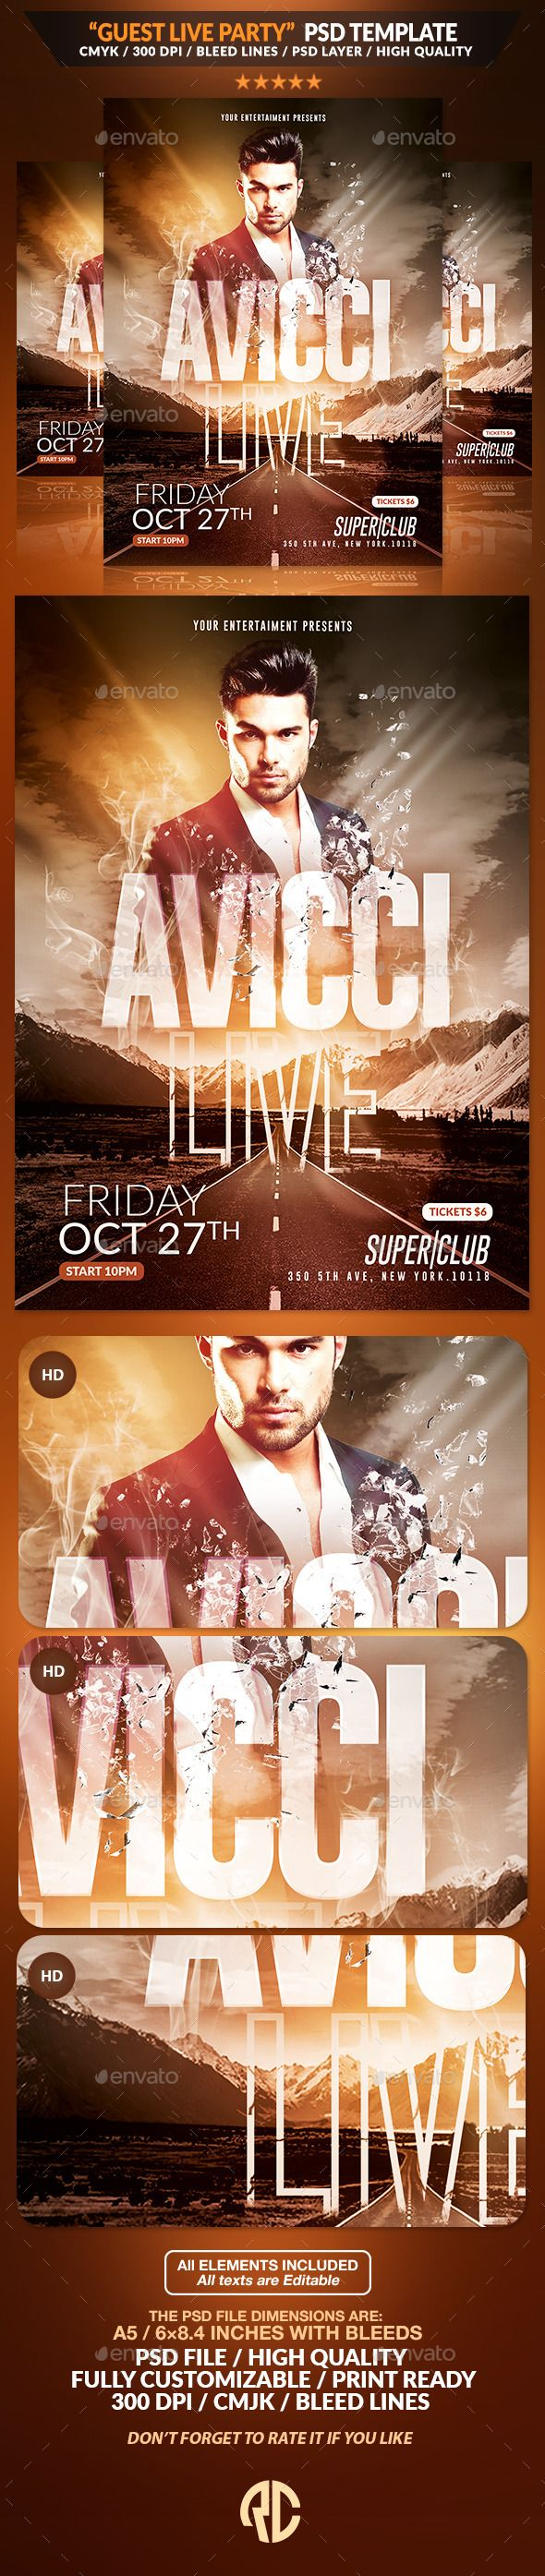 Guest Live Party | Psd Flyer Template  Psd Template Available on #envatomarket #graphicriver #templates #flyers #poster #graphics #nightclub #advertising #affiches #psd #stock #deviantart #live #party